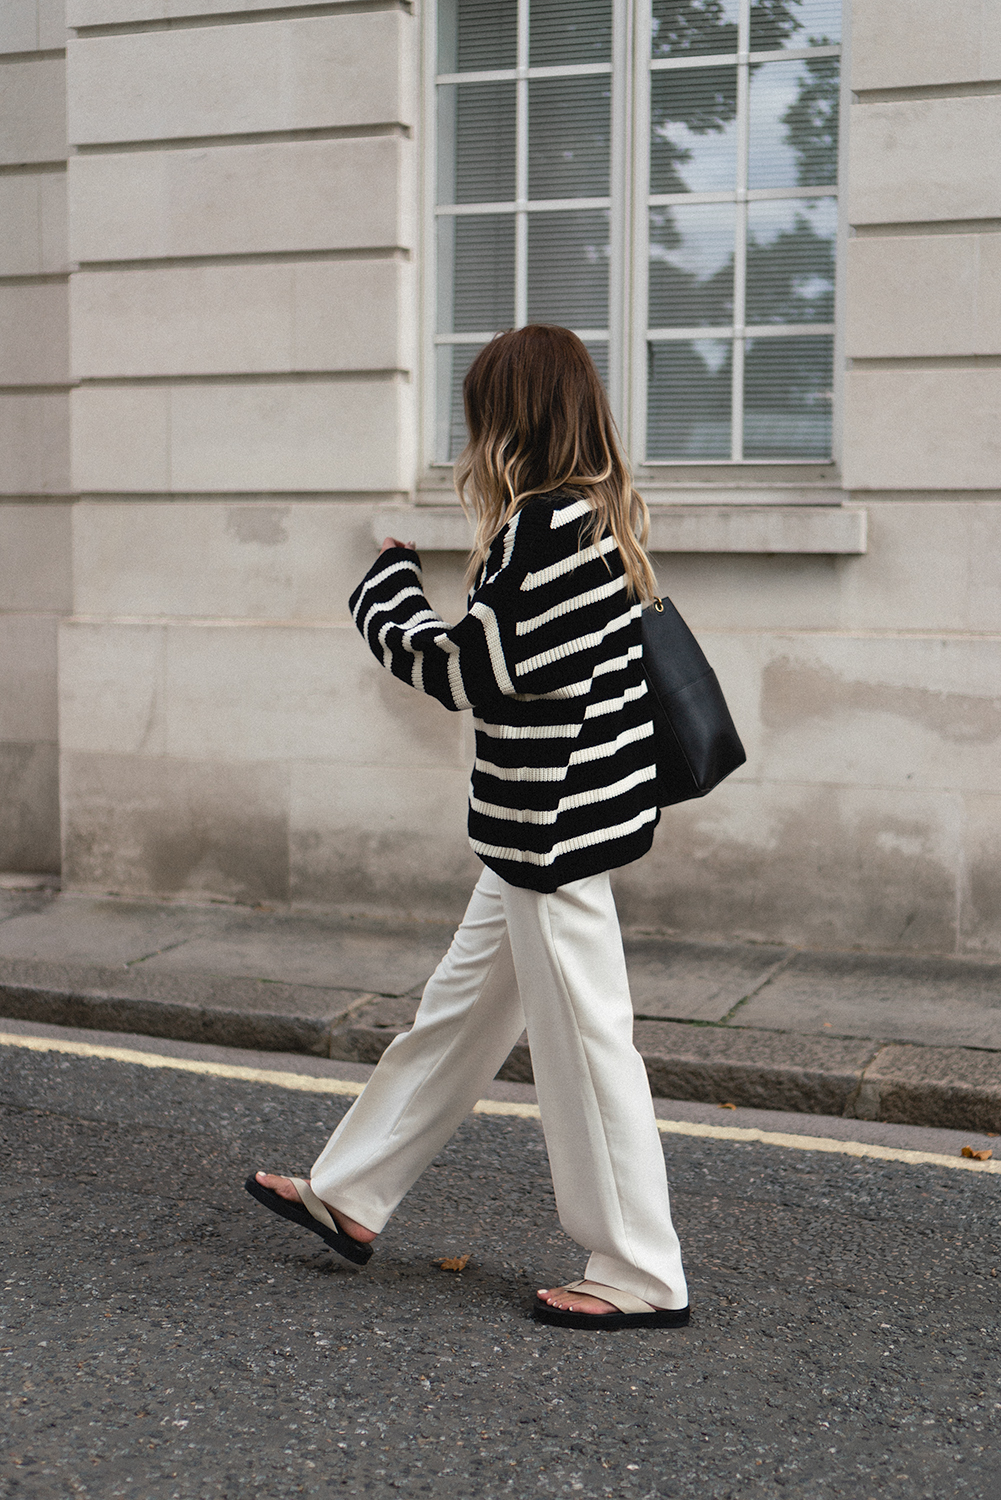 Emma Hill wearing black and white stripe jumper, white wide leg tailored trousers, Celine Seau Sangle bag, thong sandals. Chic transitional outfit Summer to Autumn copy